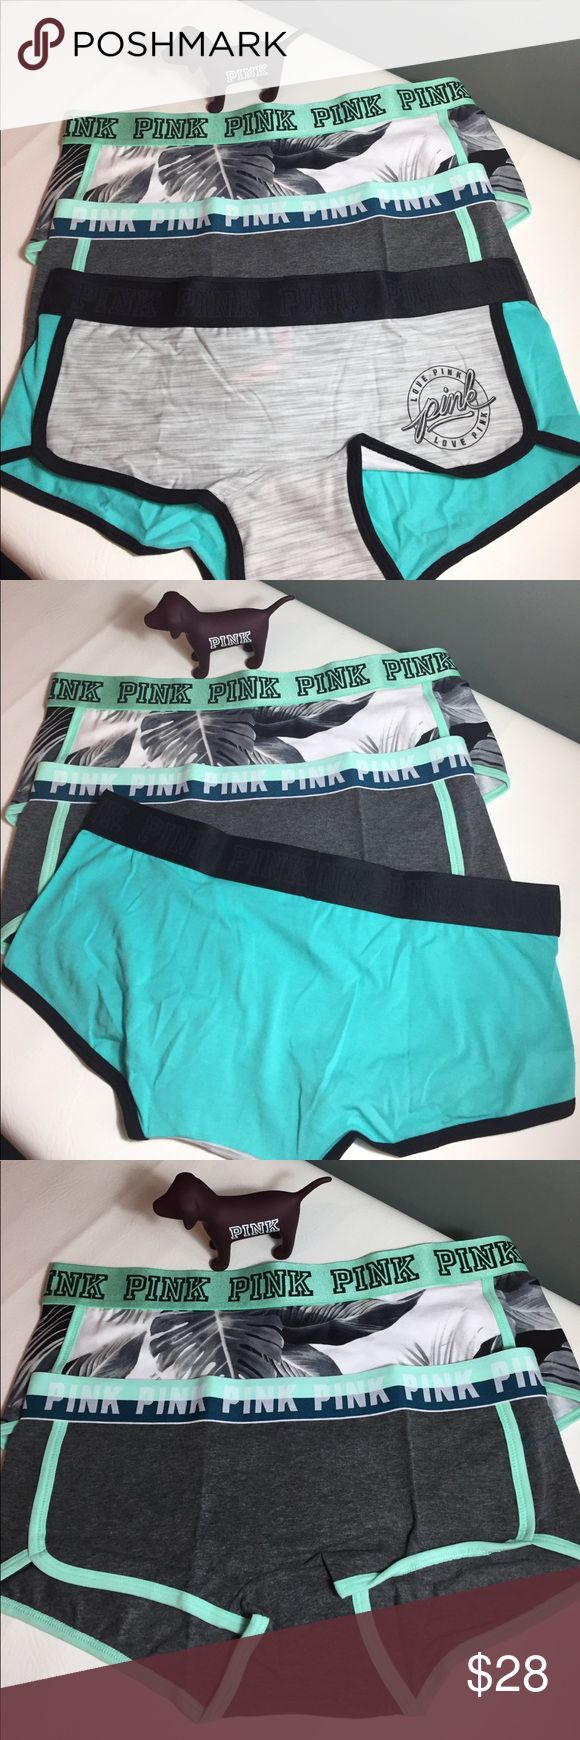 Bundle NWT VS Pink Logo BoyShorts Large New with Tags Victoria Secret Pink Logo Low Rise BoyShorts size large .   Fabric is 91% cotton and 8% elastane.   This bundle includes 3 pair of shorts as shown. PINK Victoria's Secret Intimates & Sleepwear Panties